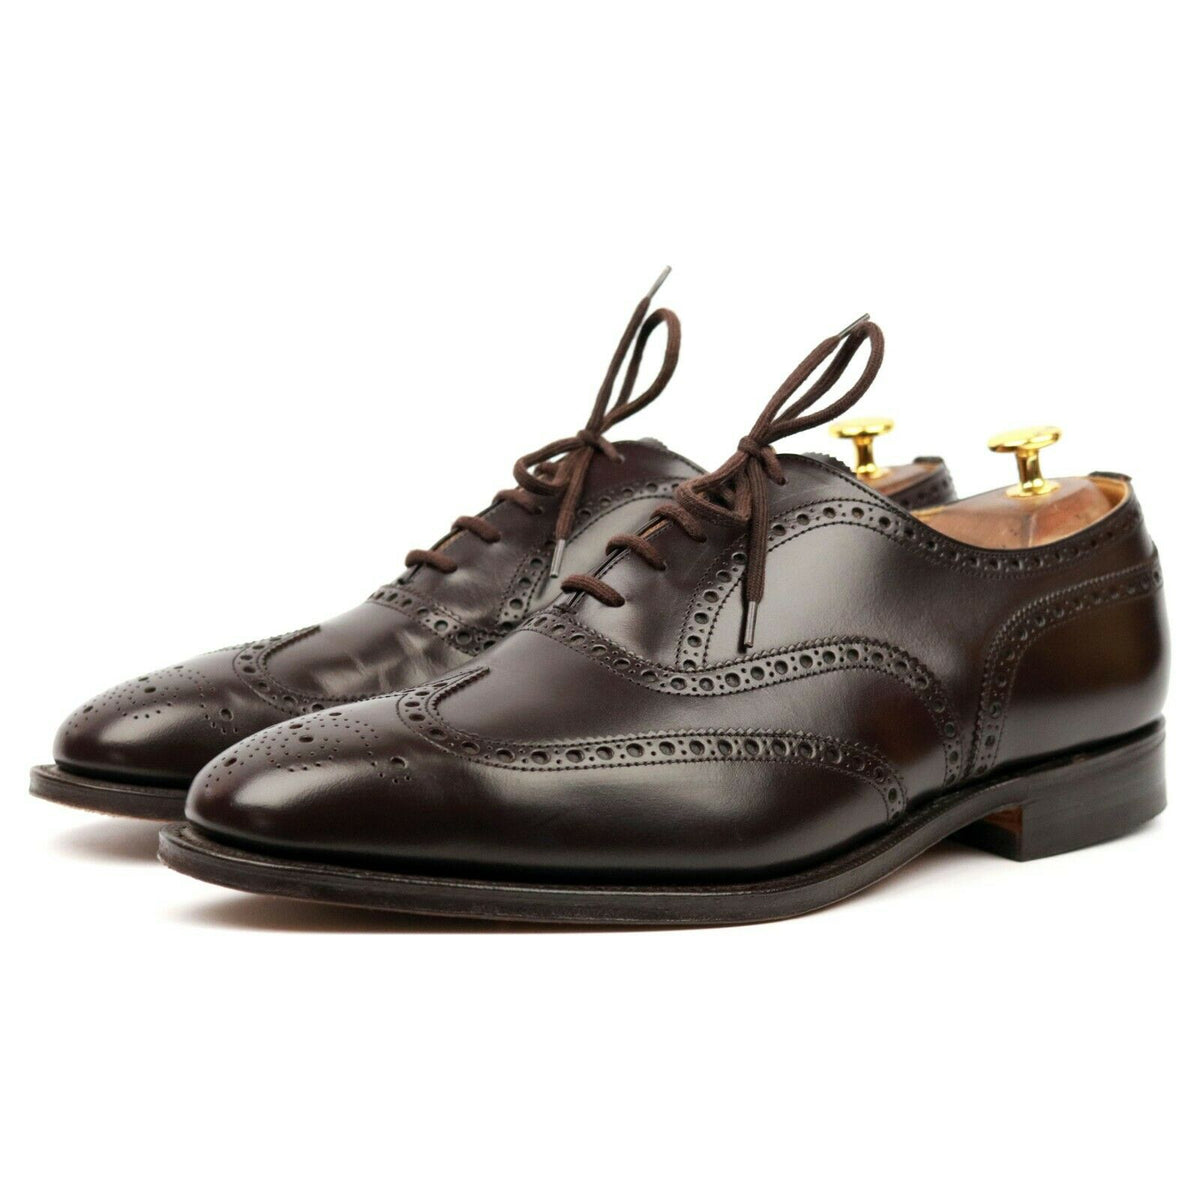 Church's 'Nene' Brown Leather Brogues UK 10.5 F